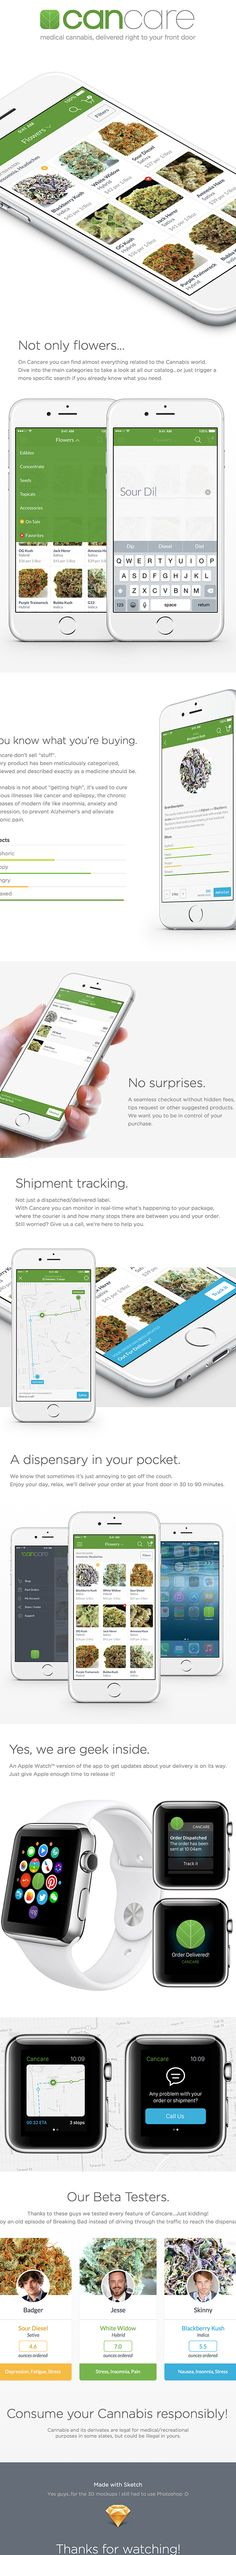 Cancare - Medical Marijuana Delivery App on Behance